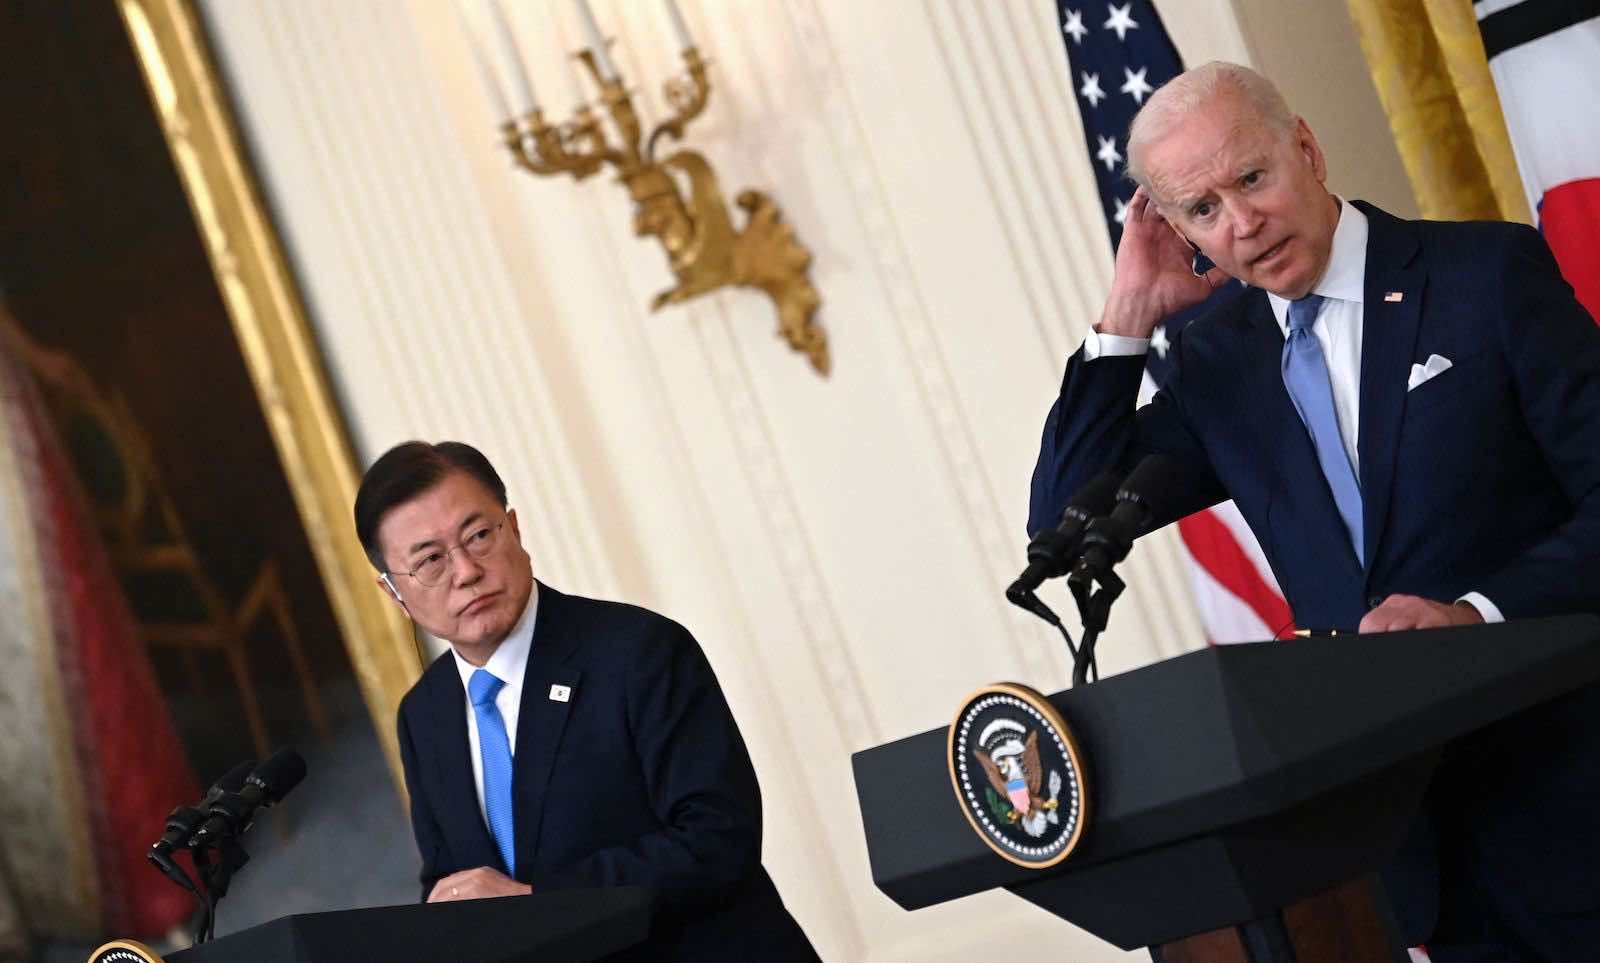 South Korean President Moon Jae-in and US President Joe Biden in the East Room of the White House on 21 May (Brendan Smialowski/AFP via Getty Images)